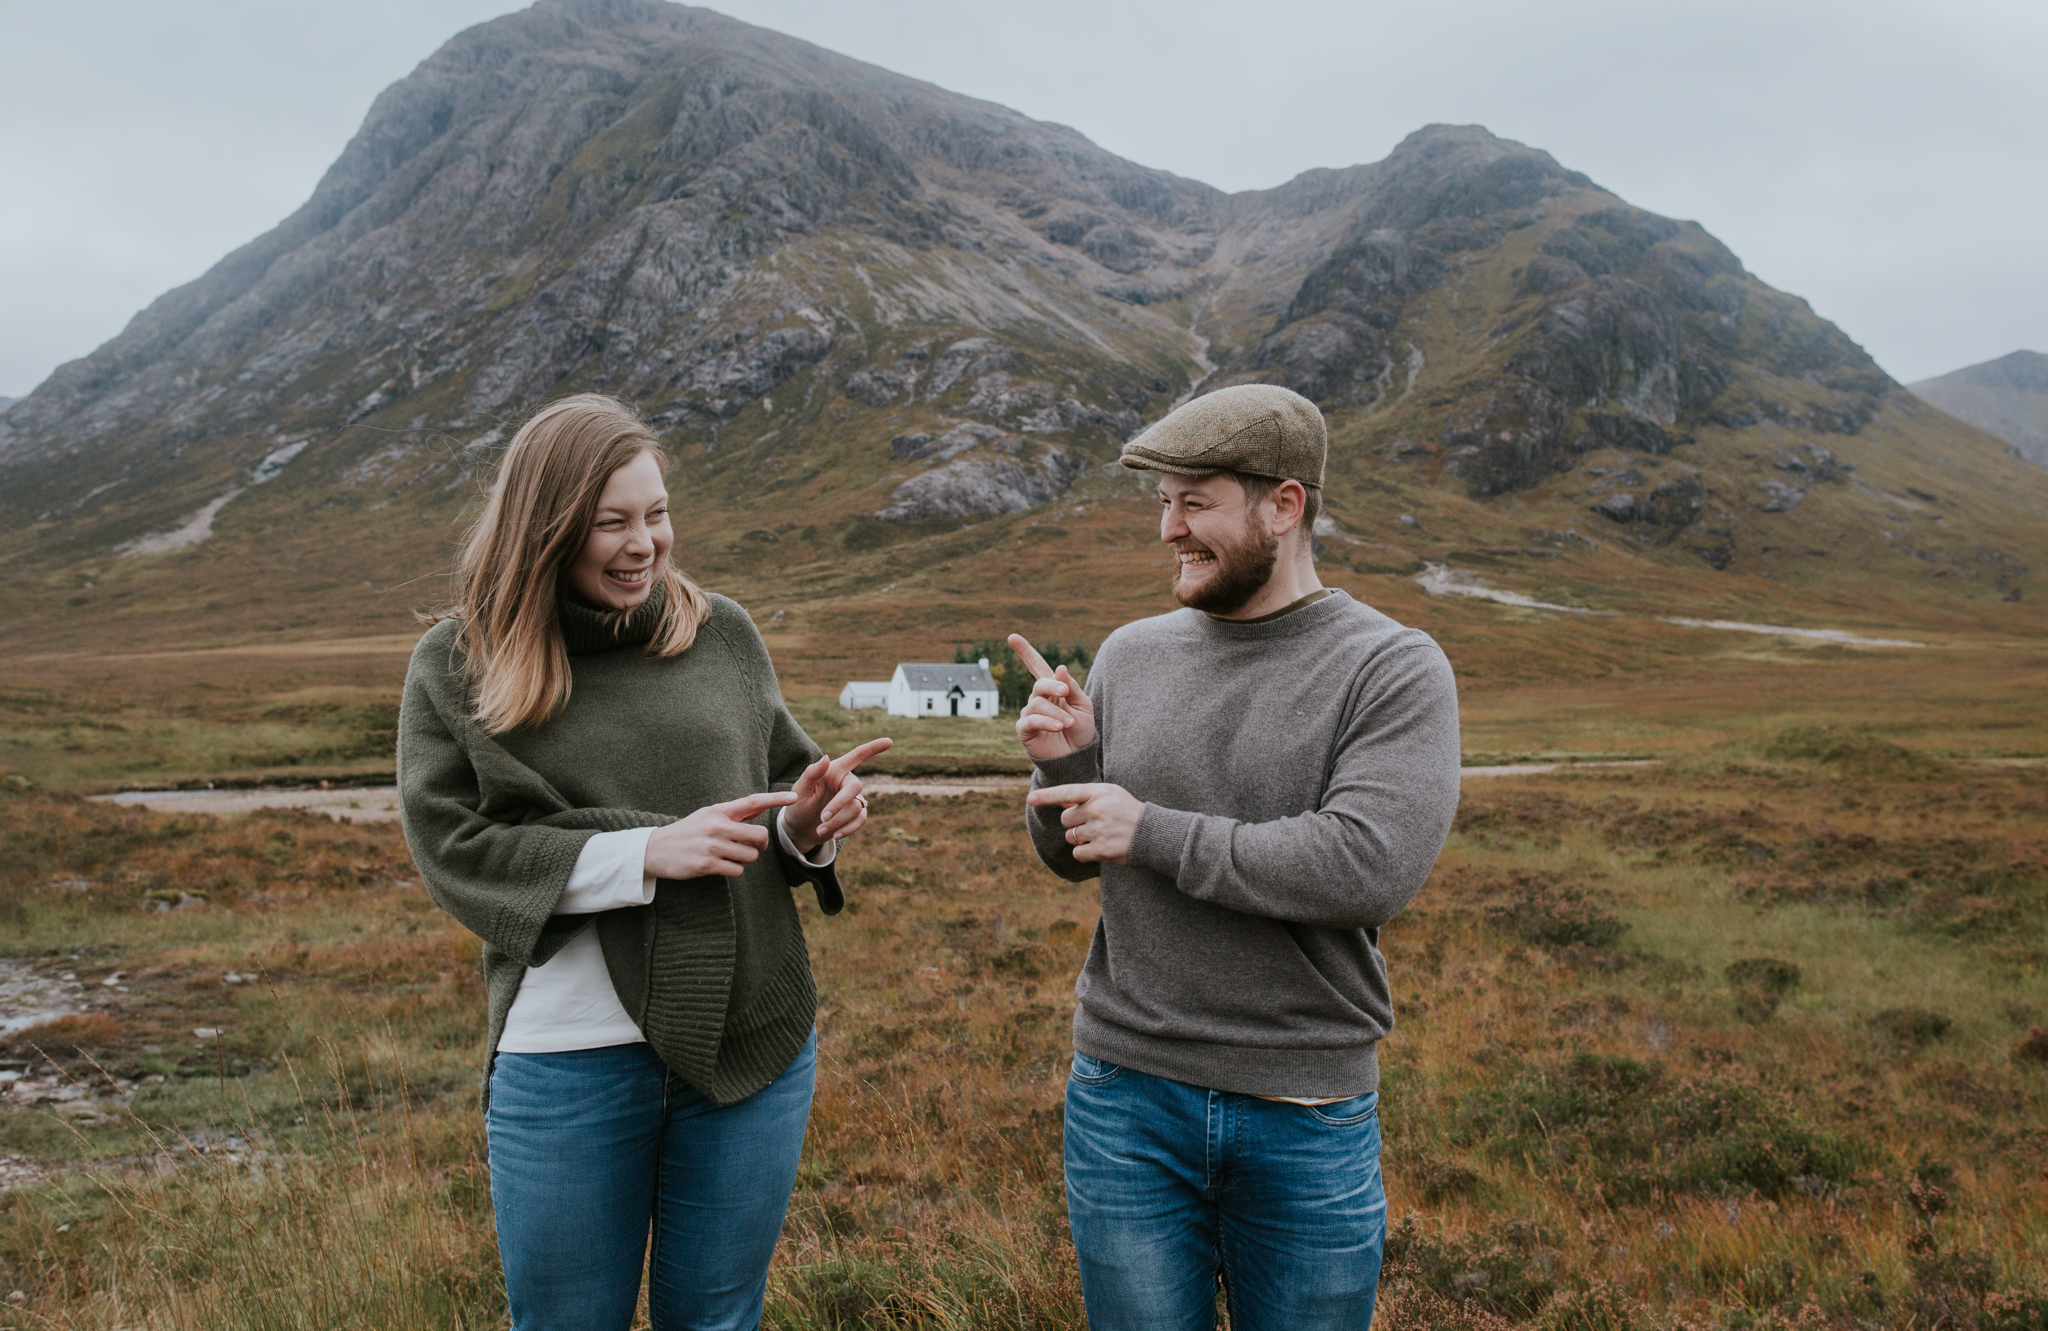 Documentary elopement and wedding photography in Scotland